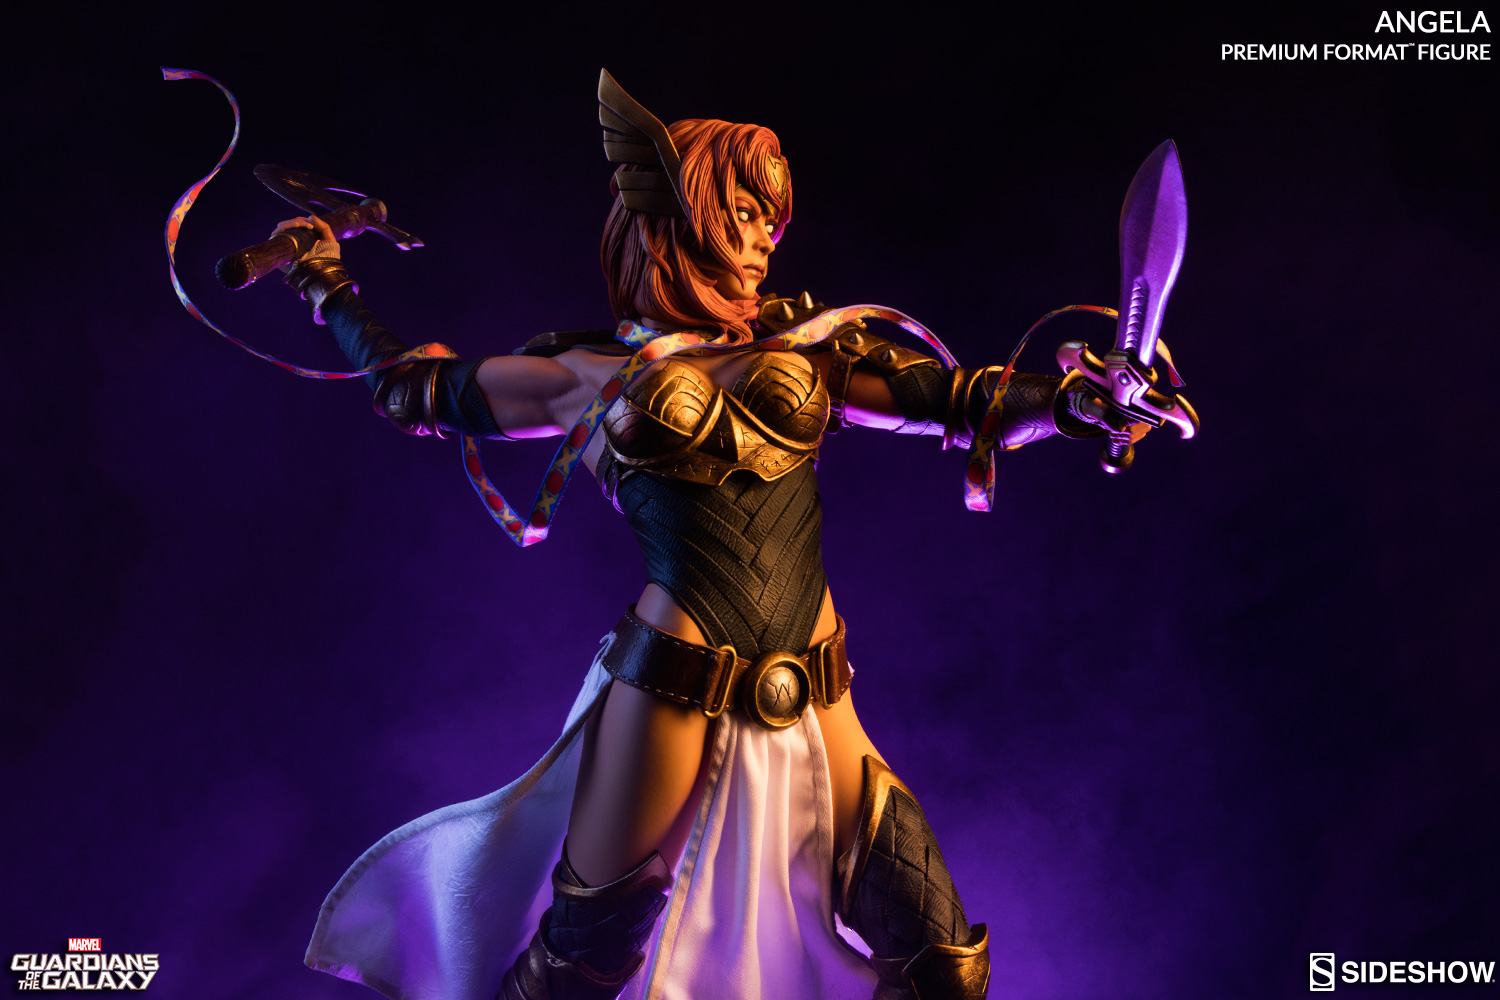 Link a marvel-guardians-of-the-galaxy-angela-premium-format-300463-03